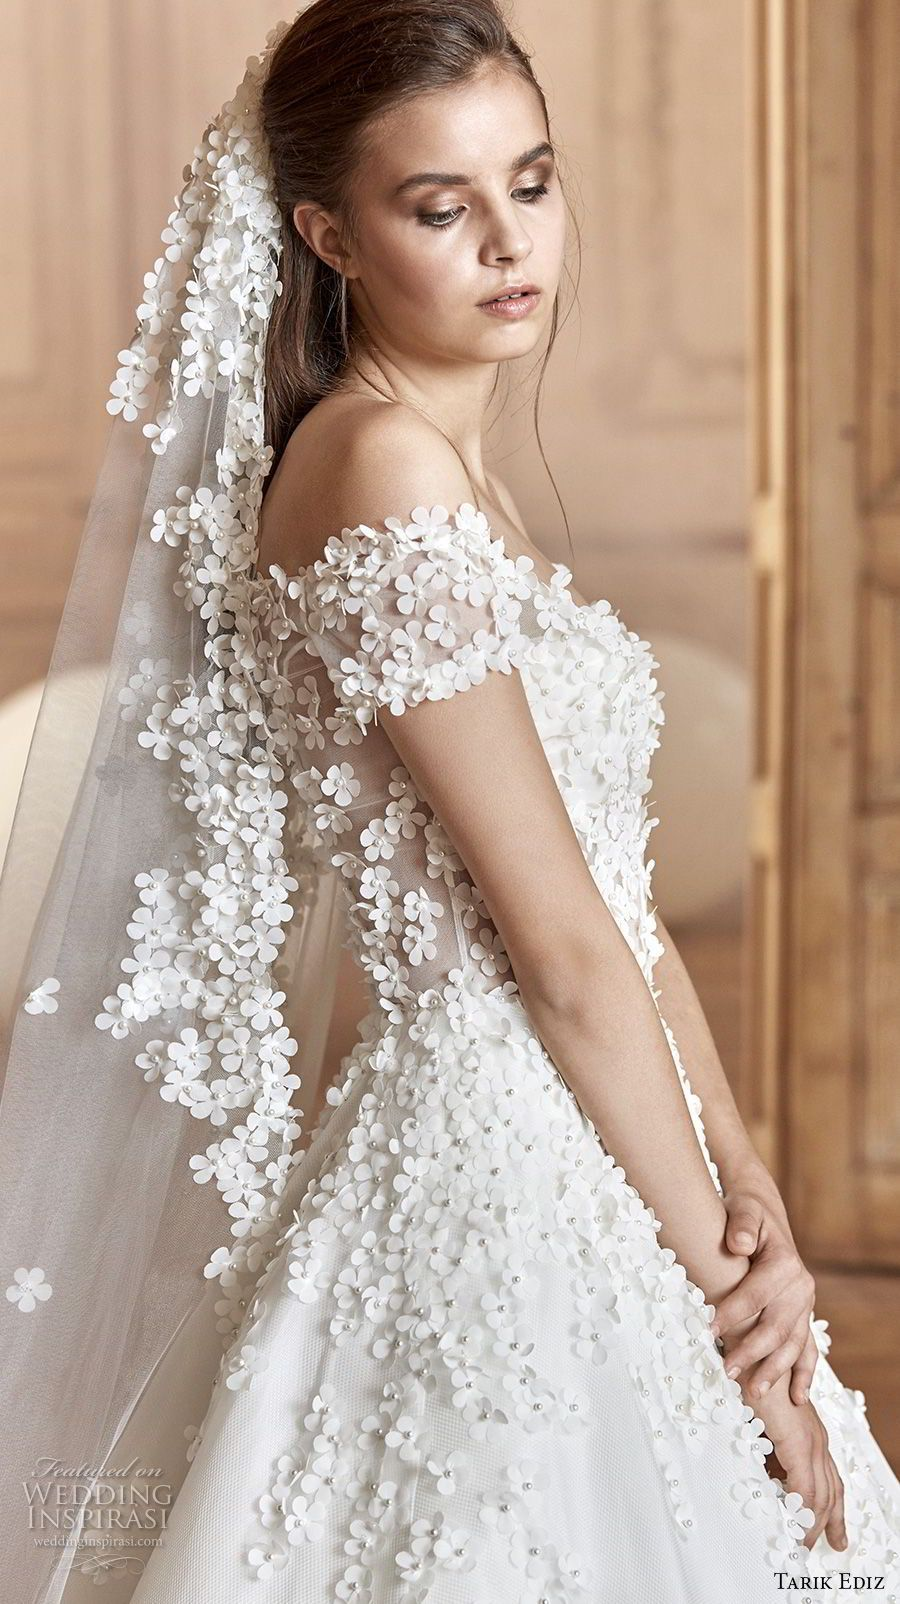 e8ea2c7edff tarik ediz 2017 bridal off the shoulder sweetheart neckline heavily  embellished bodice romantic princess a line wedding dress (5) sdv -- Tarik  Ediz White ...